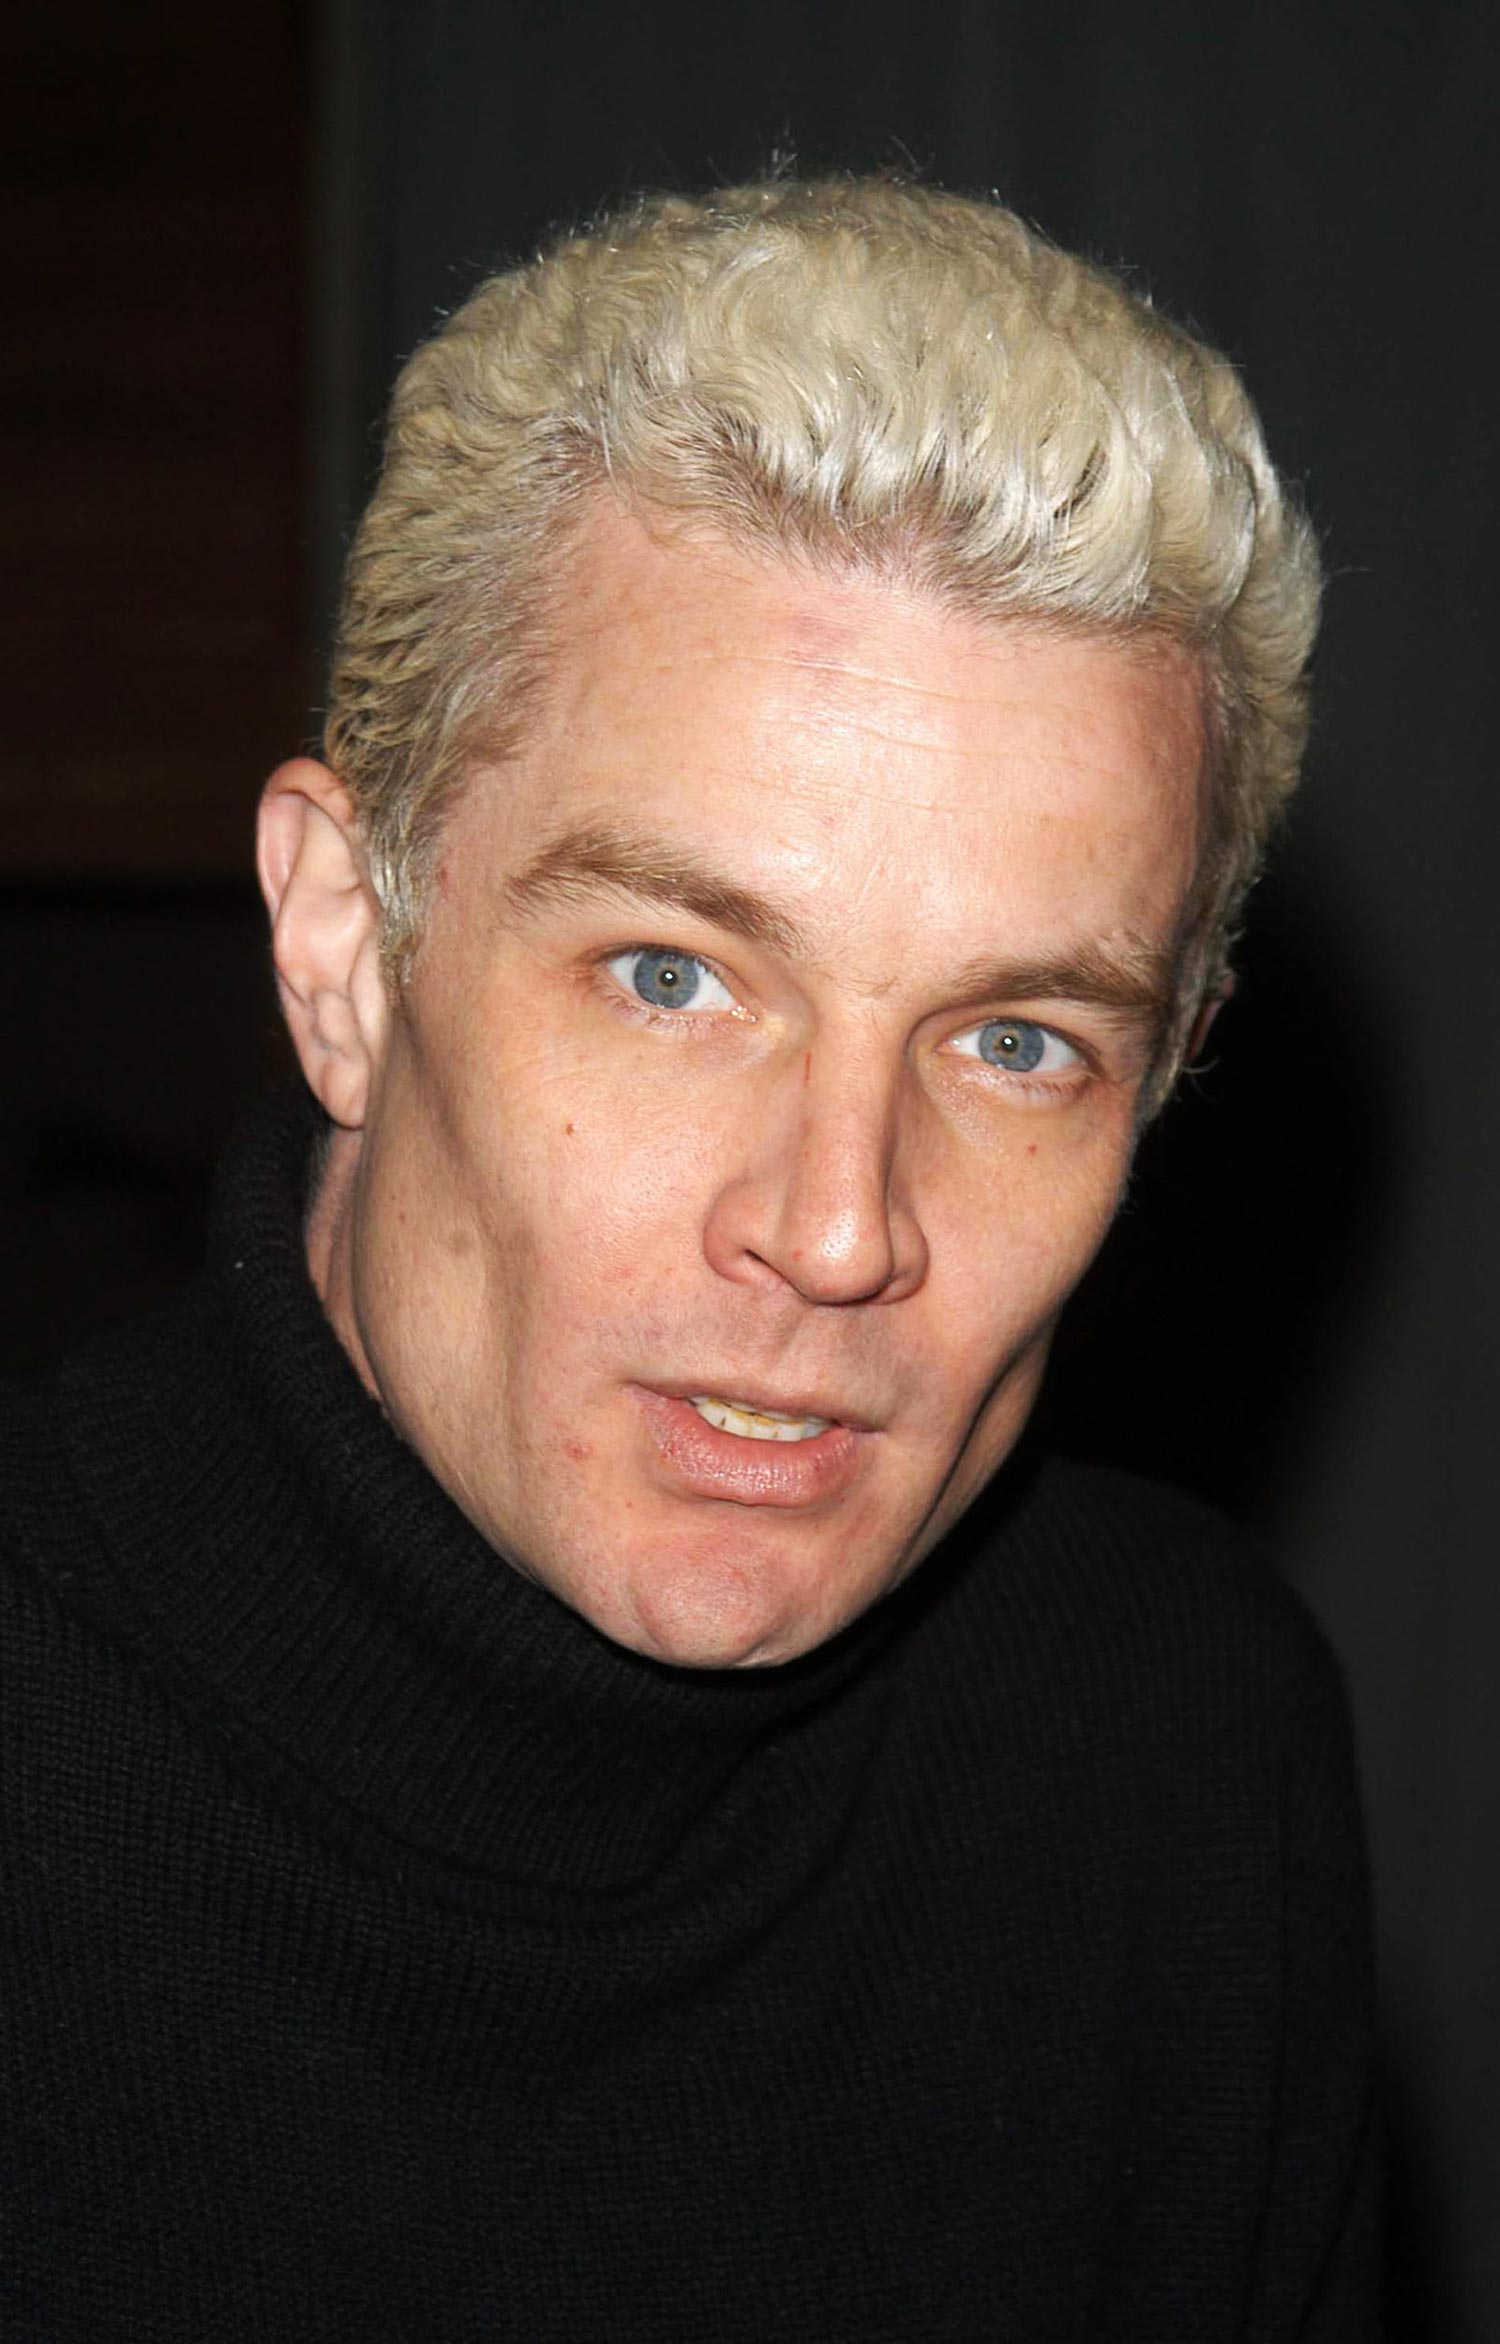 IMG/jpg/james-marsters-buffy-wrap-party-2003-hq-02-1500.jpg